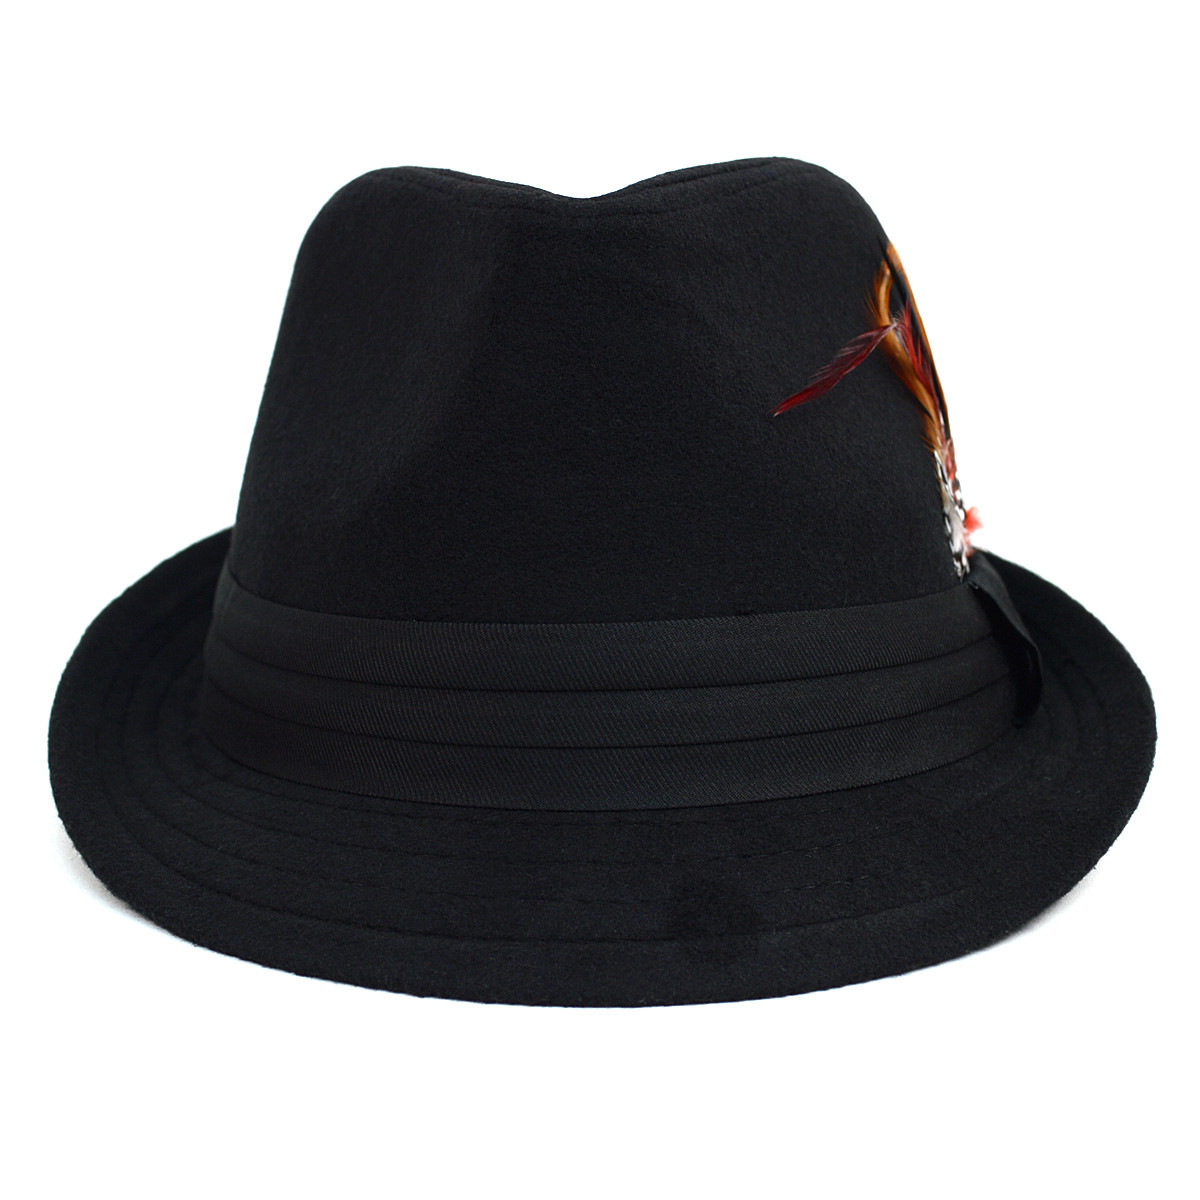 Fall/Winter Trilby Fedora Hat with Feather Accent & Band Trim H10333-BK